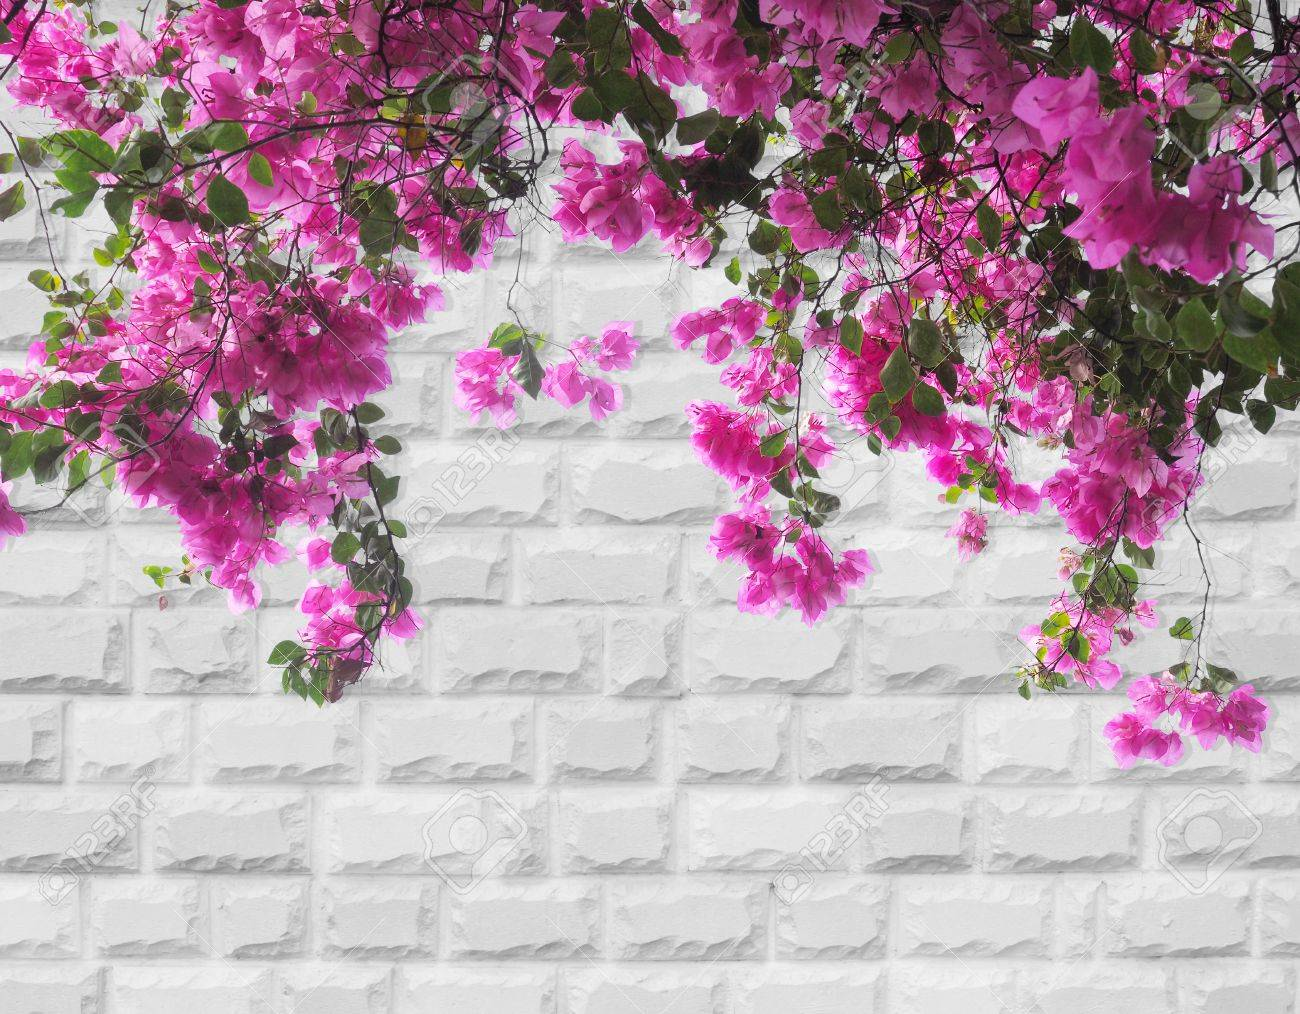 pink bougainvillea flower on grey brick wall background stock photo